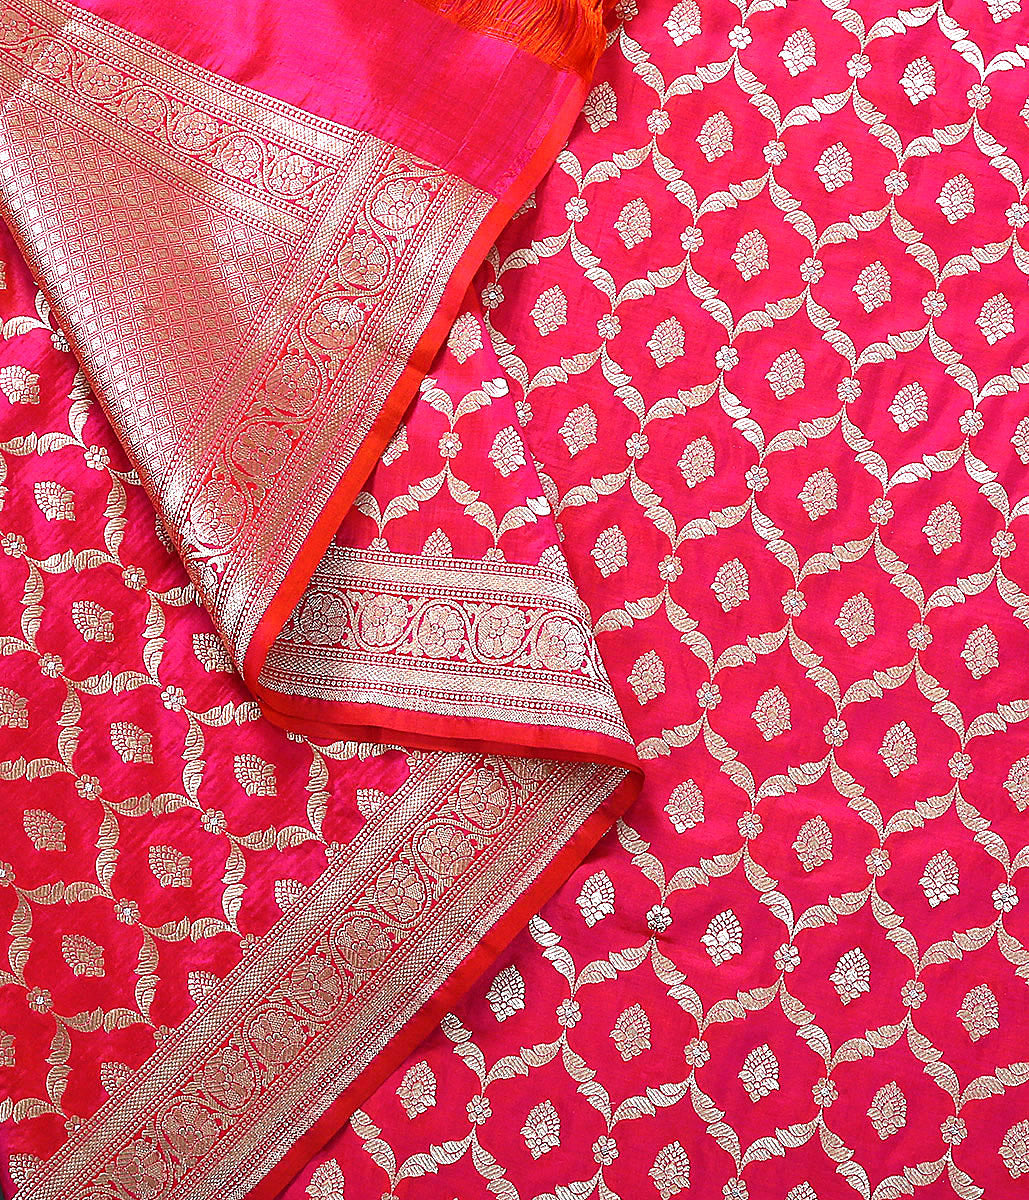 Handwoven Pink and Orange dual tone Silk Jangla Dupatta